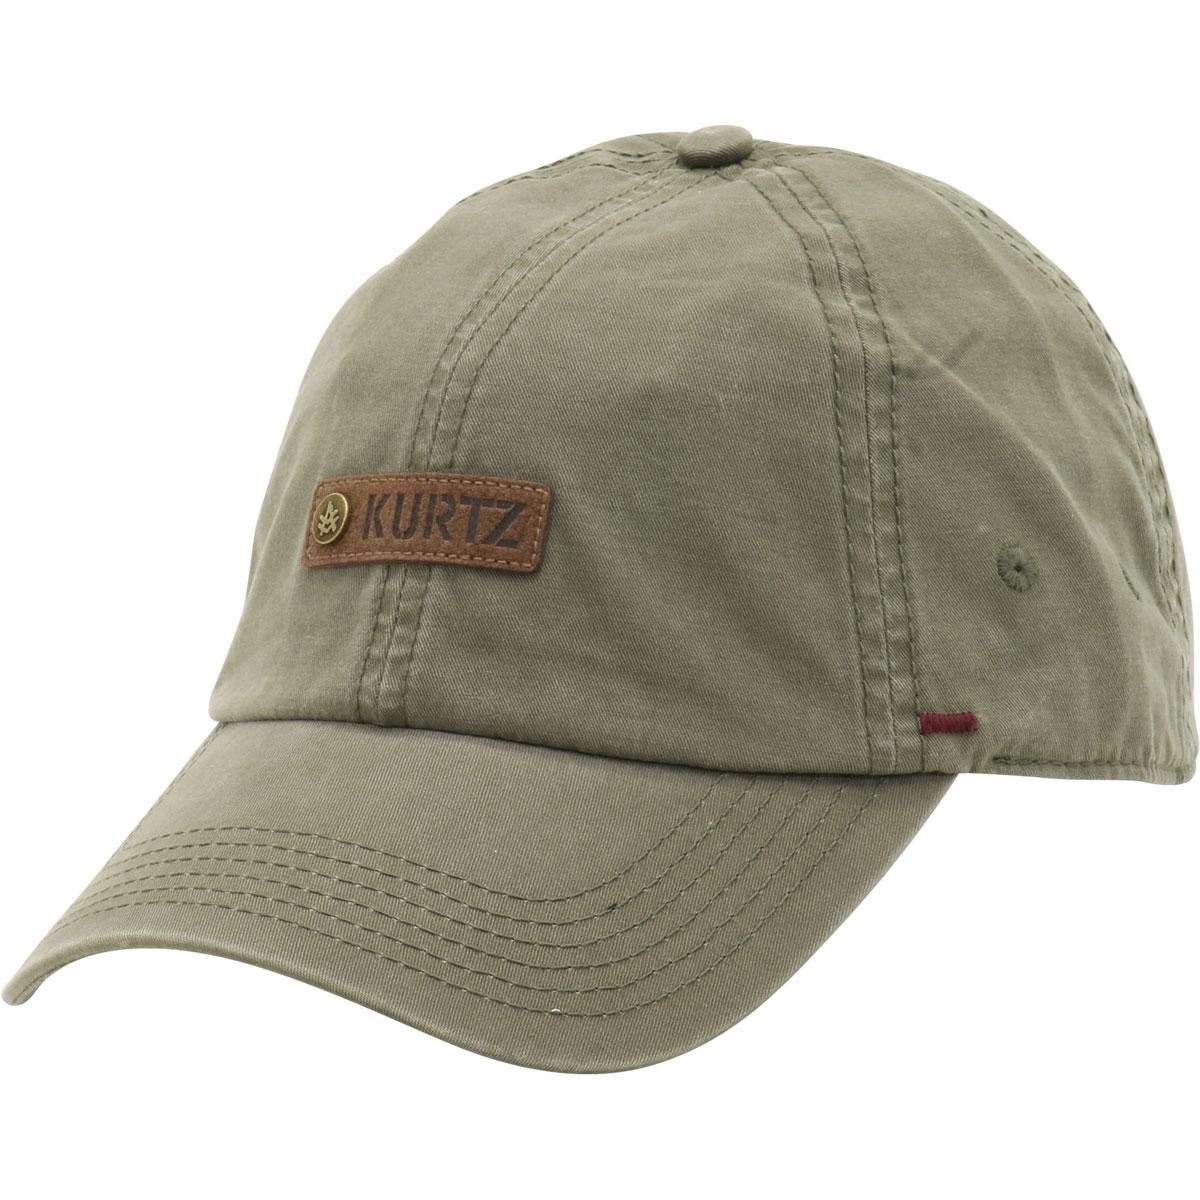 Image of Kurtz Men's Chino Corps Baseball Cap Hat - Olive Drab - One Size Fits Most